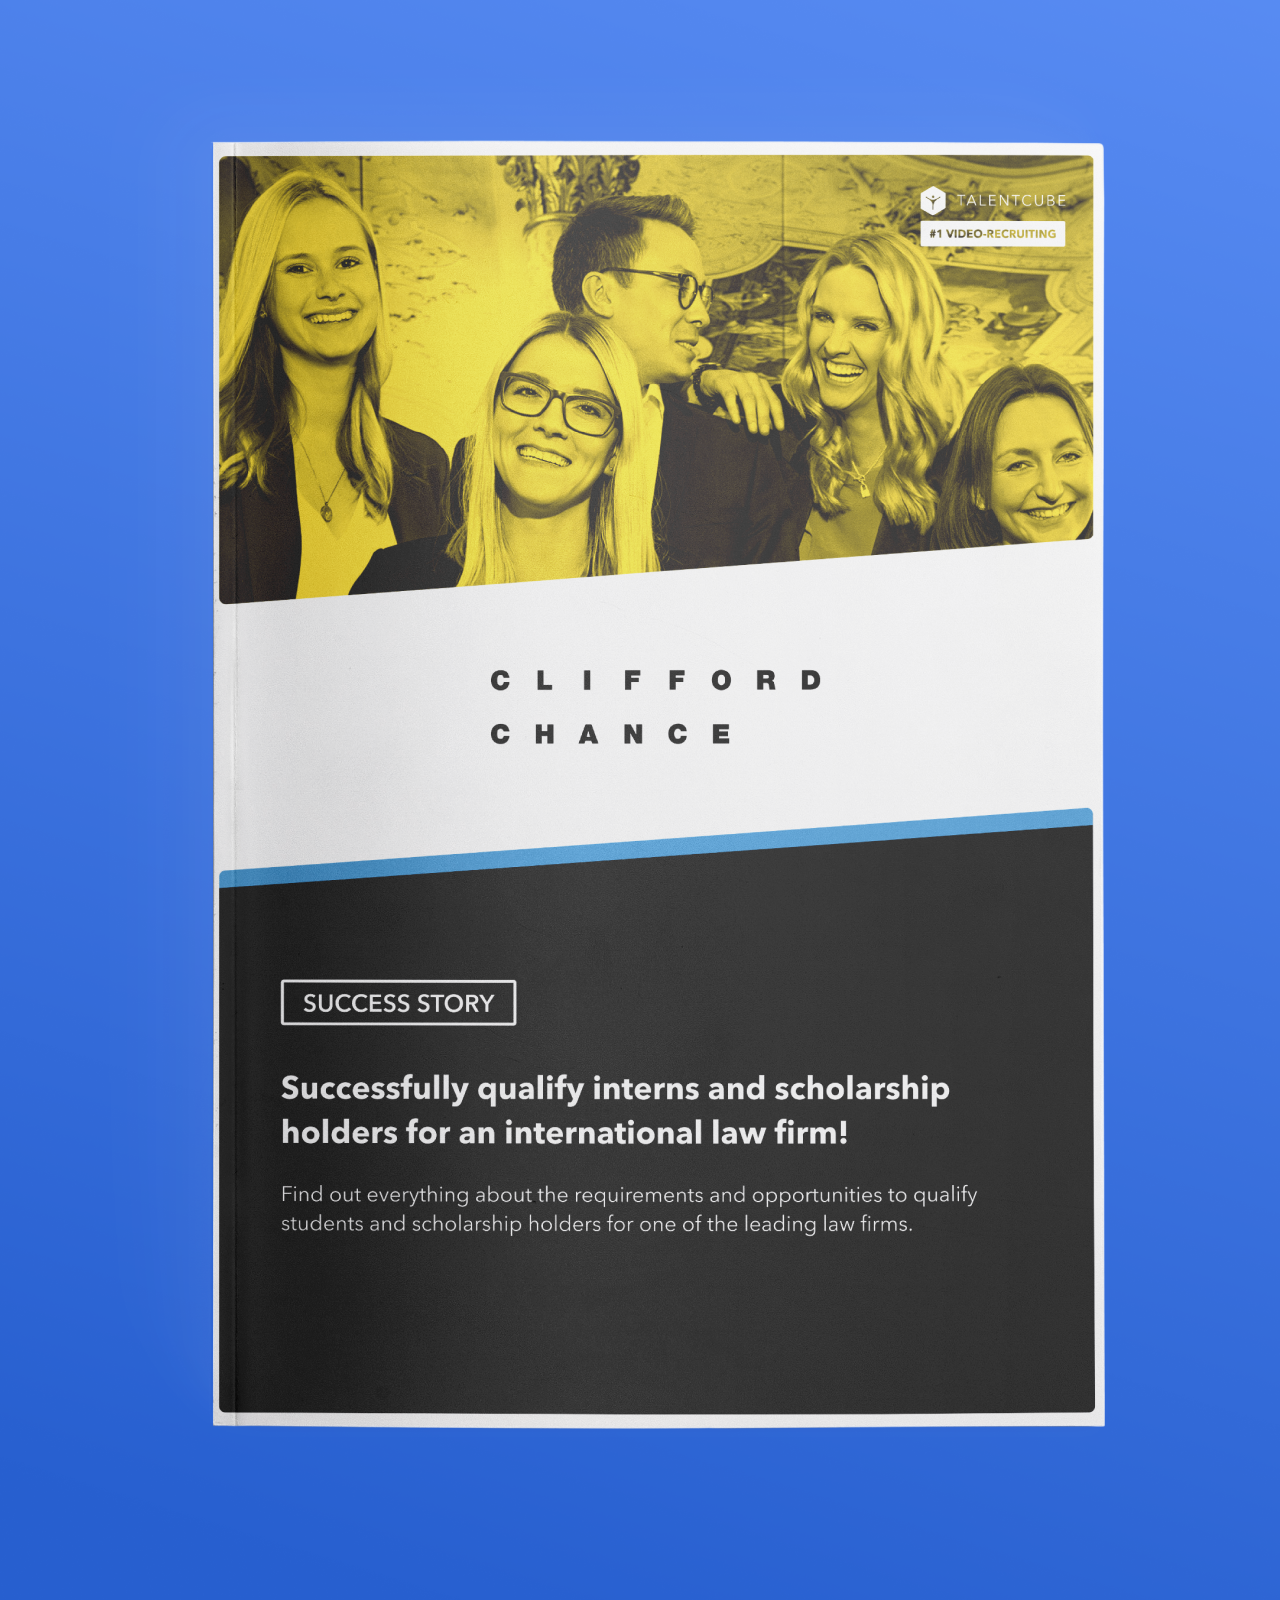 Clifford Chance – Successfully qualify interns and scholarship holders for an international law firm!